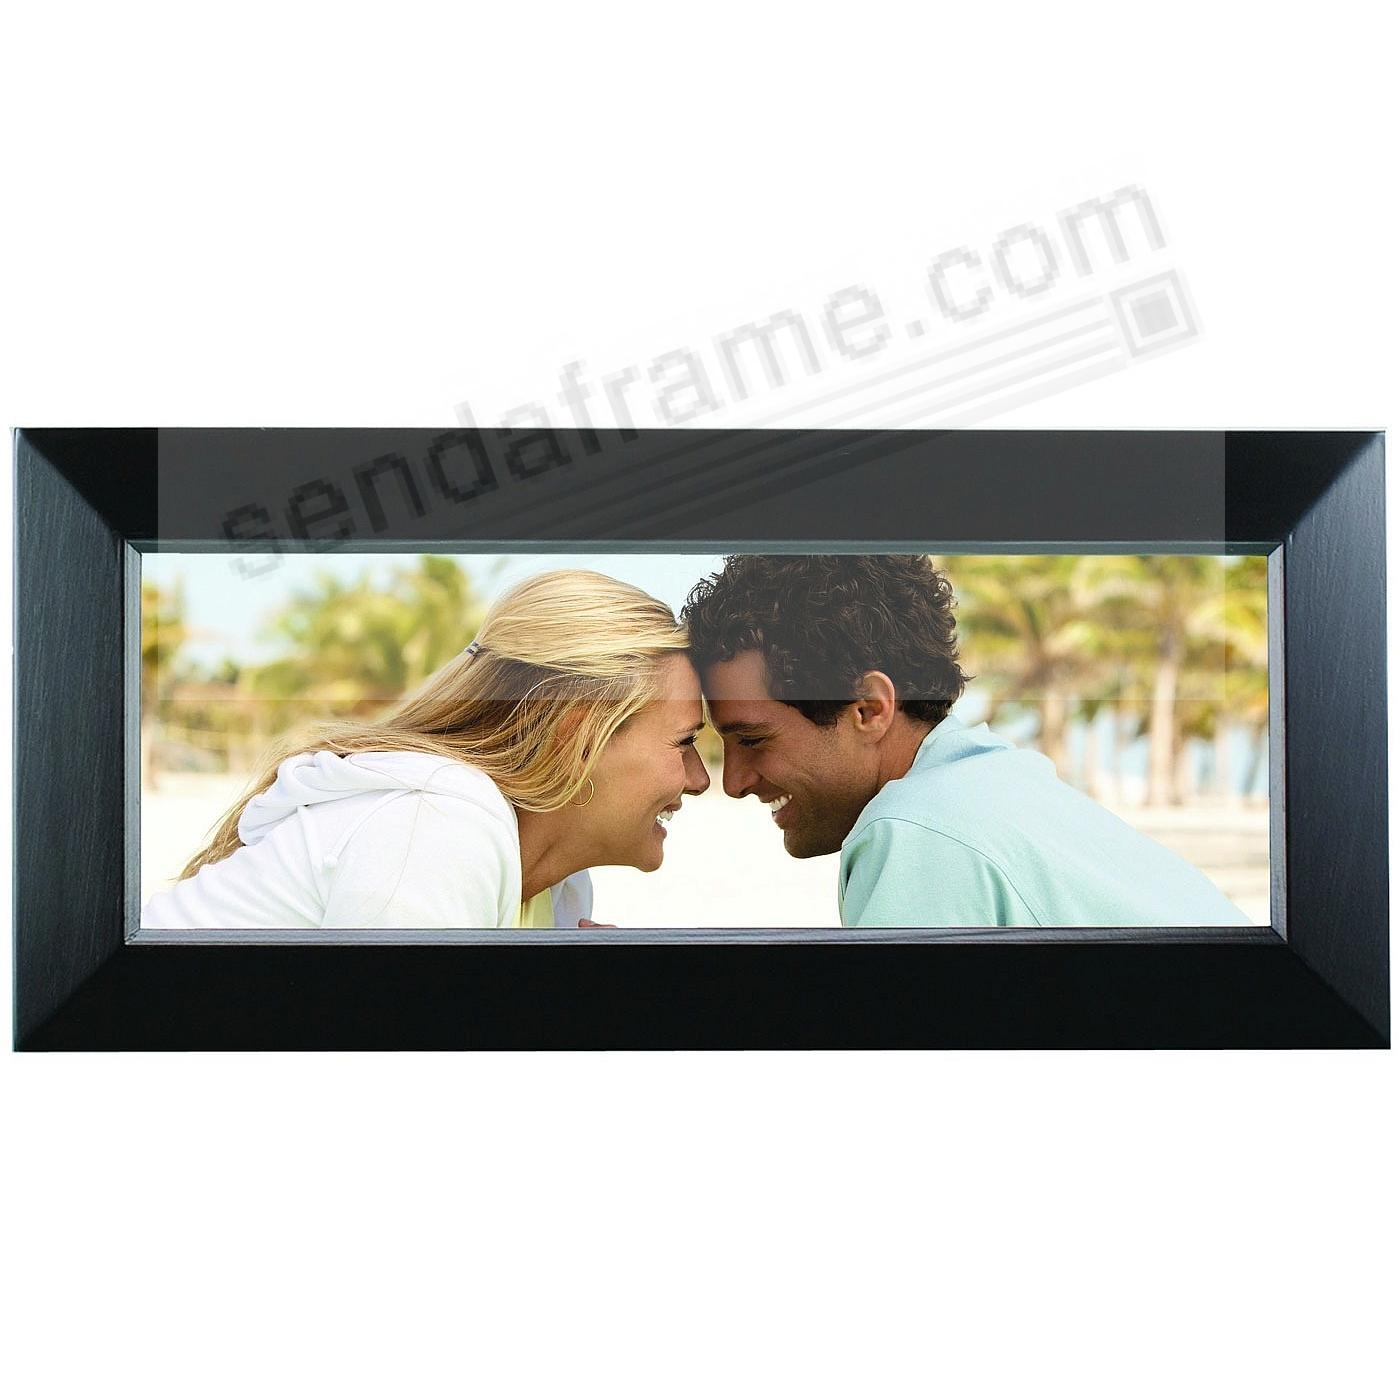 dakota ebonyblack panoramic pine frame by prinzreg